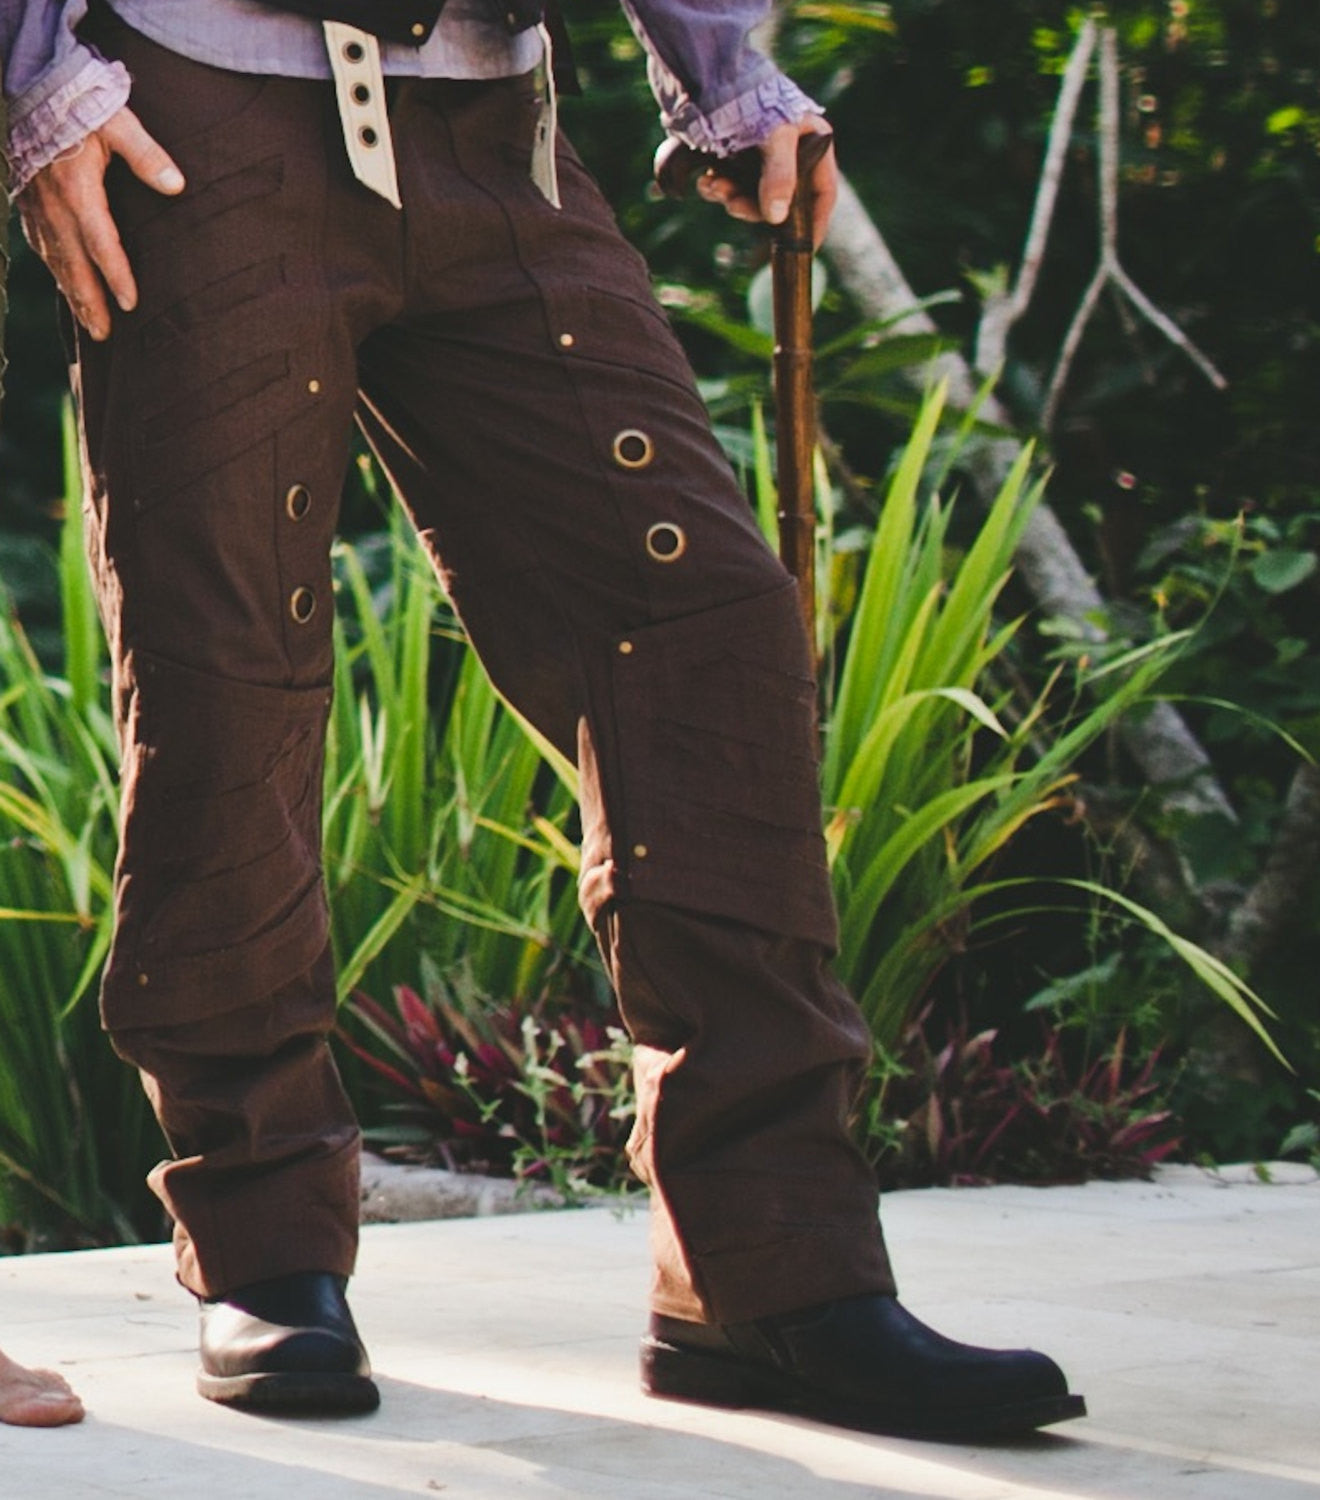 e1ba78824898a9 MENS STEAMPUNK Pants - Large, Brown Pants, Hipster, Burning Man, Festival  Clothing, Stretch Canvas, Gift for Boyfriend, Caballero Pants